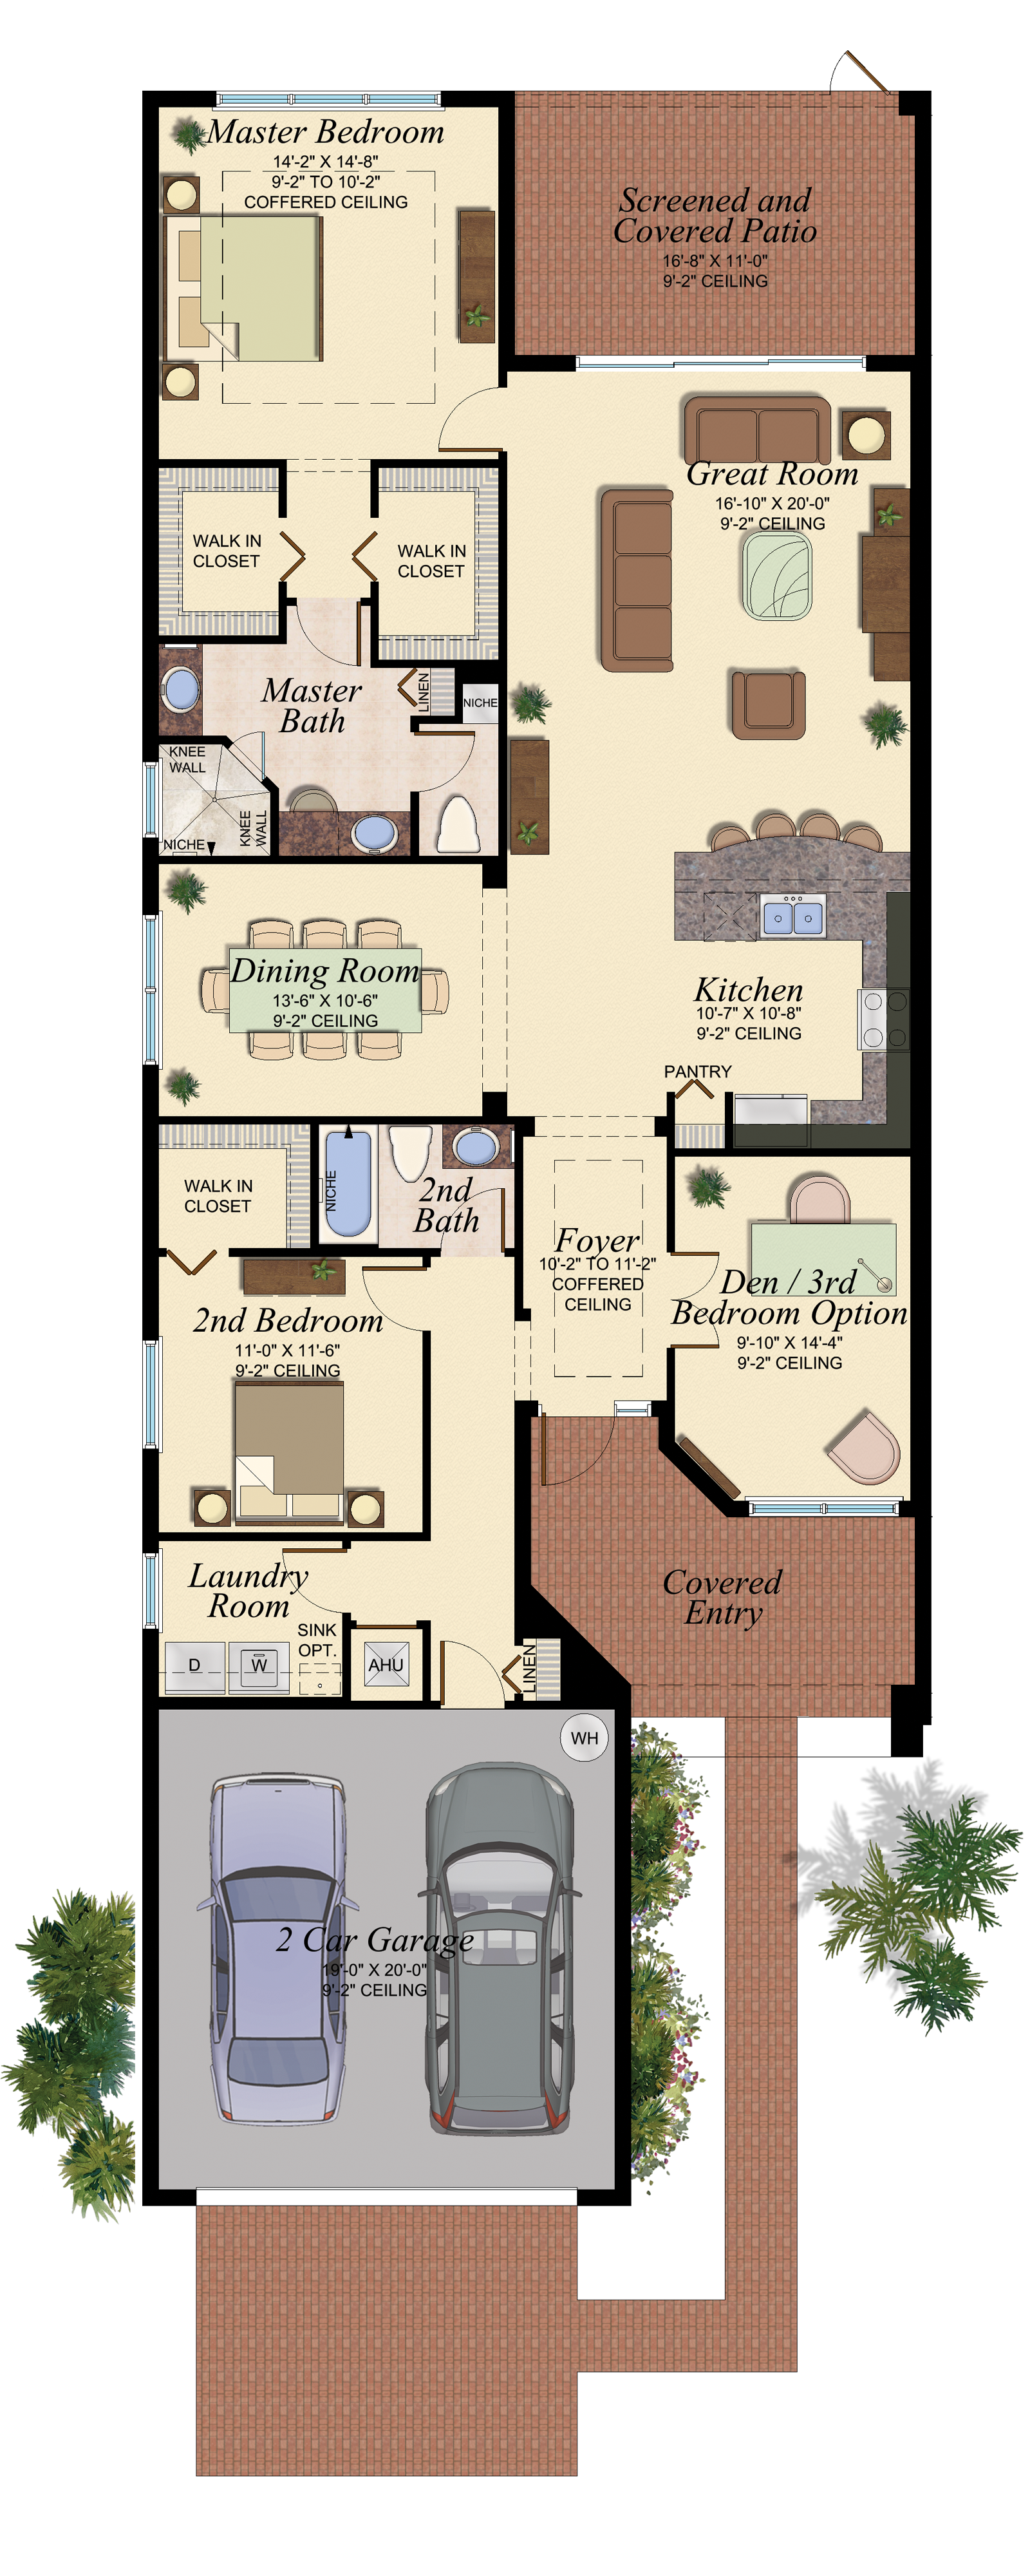 Fascinating Barbie Dream House Floor Plan Pictures   Exterior ideas     GL Homes House Floor Plans Pinterest House Barbie Dream House